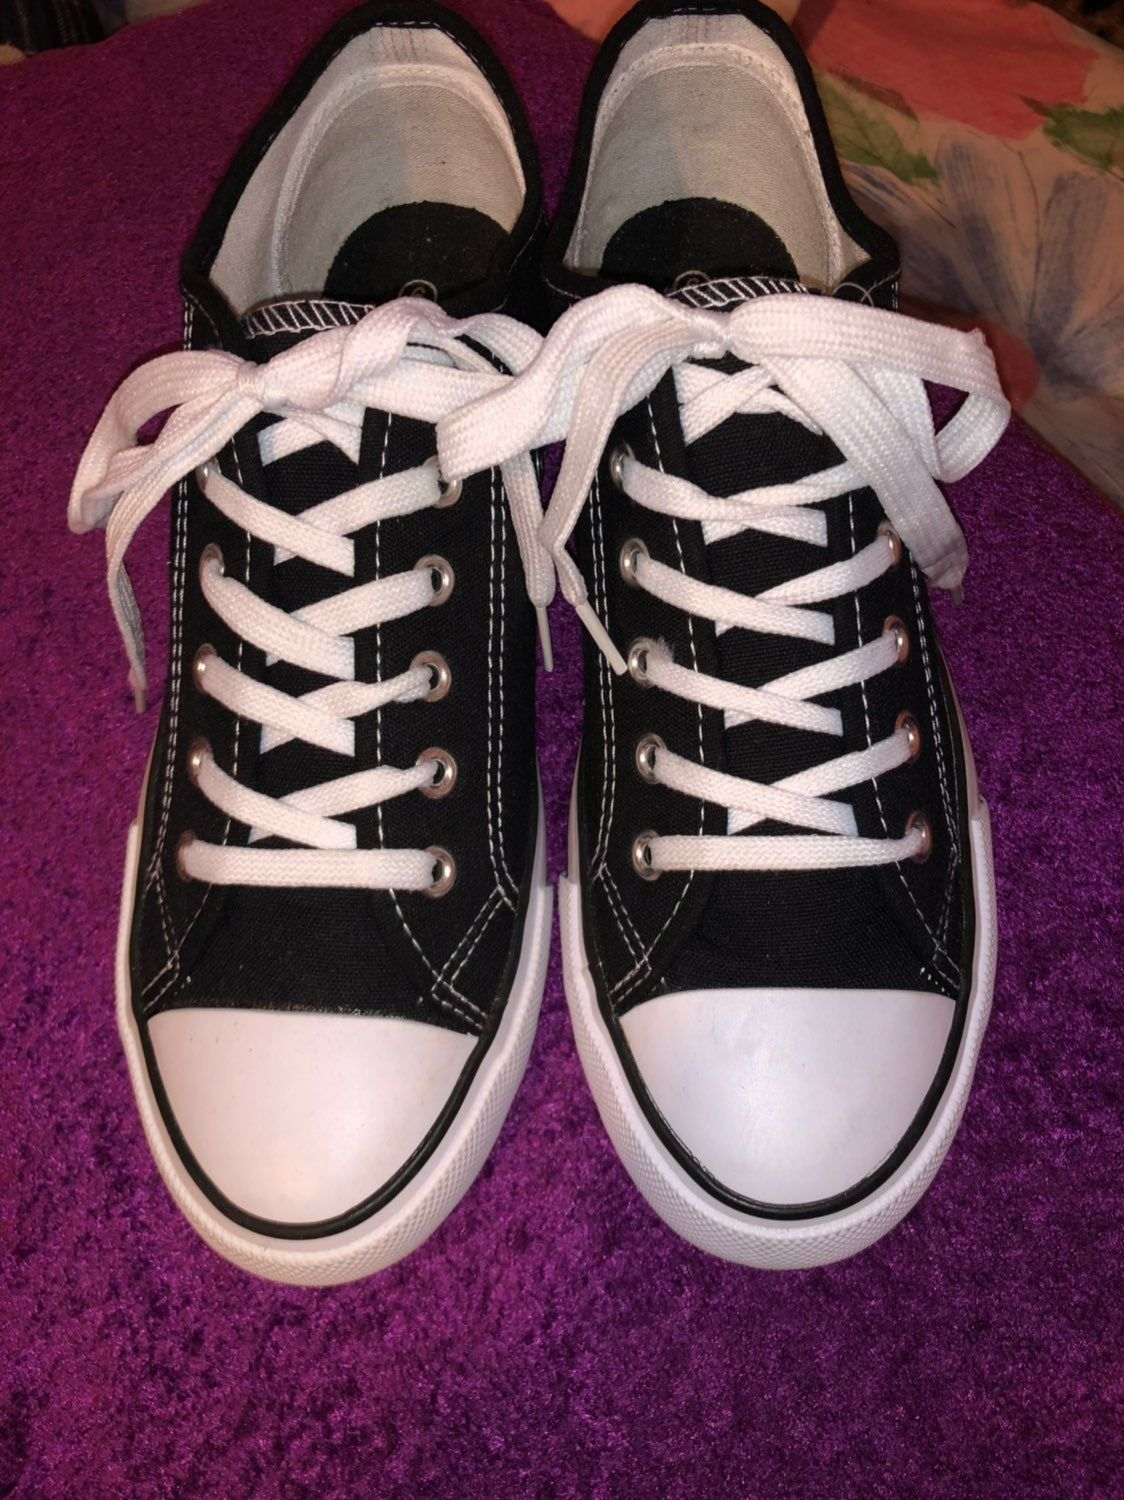 Brand NEW CONVERSE look alike Size 6 on